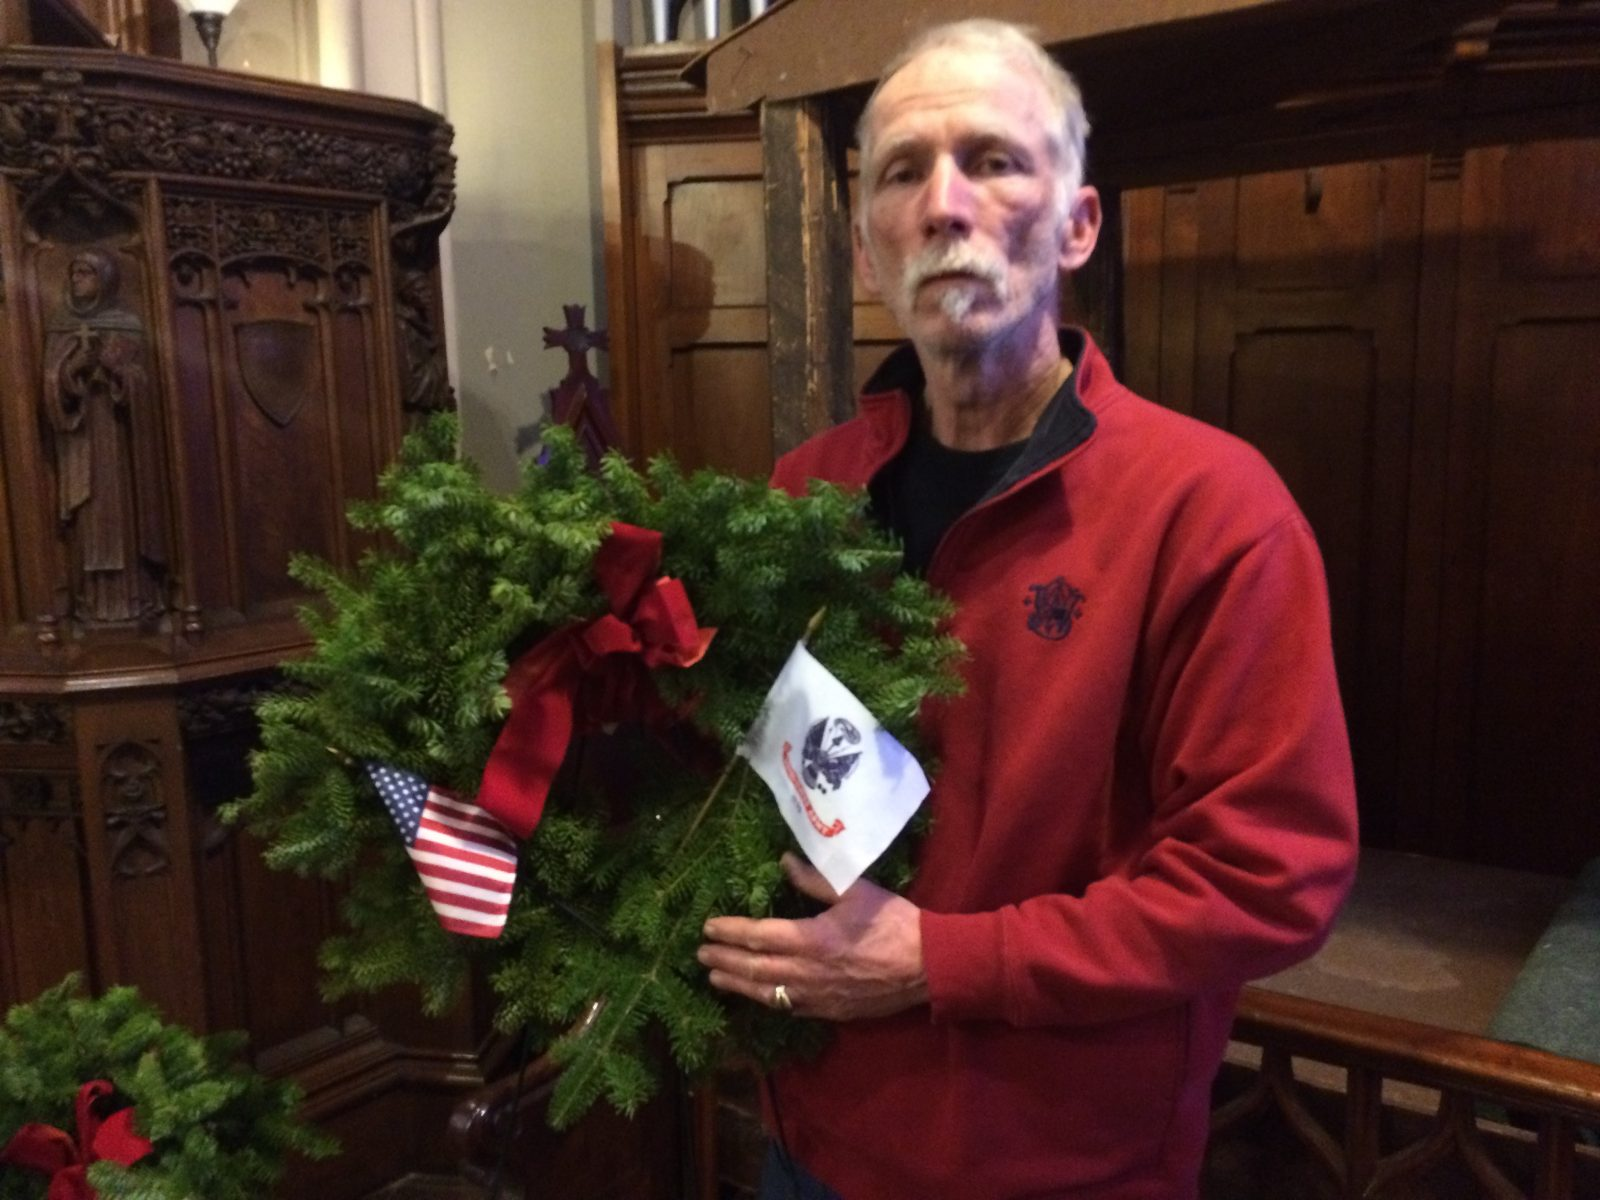 Jim Buschman, supervisor of Soule Cemetery, in Cayuga  County, with a wreath honoring Lt. Robert Buffum, a Civil War Medal of Honor recipient. The discovery of more than 100 sets of human remains in an Auburn yard has left the whereabouts of Buffum's remains a mystery. (Sean Kirst/submitted image)